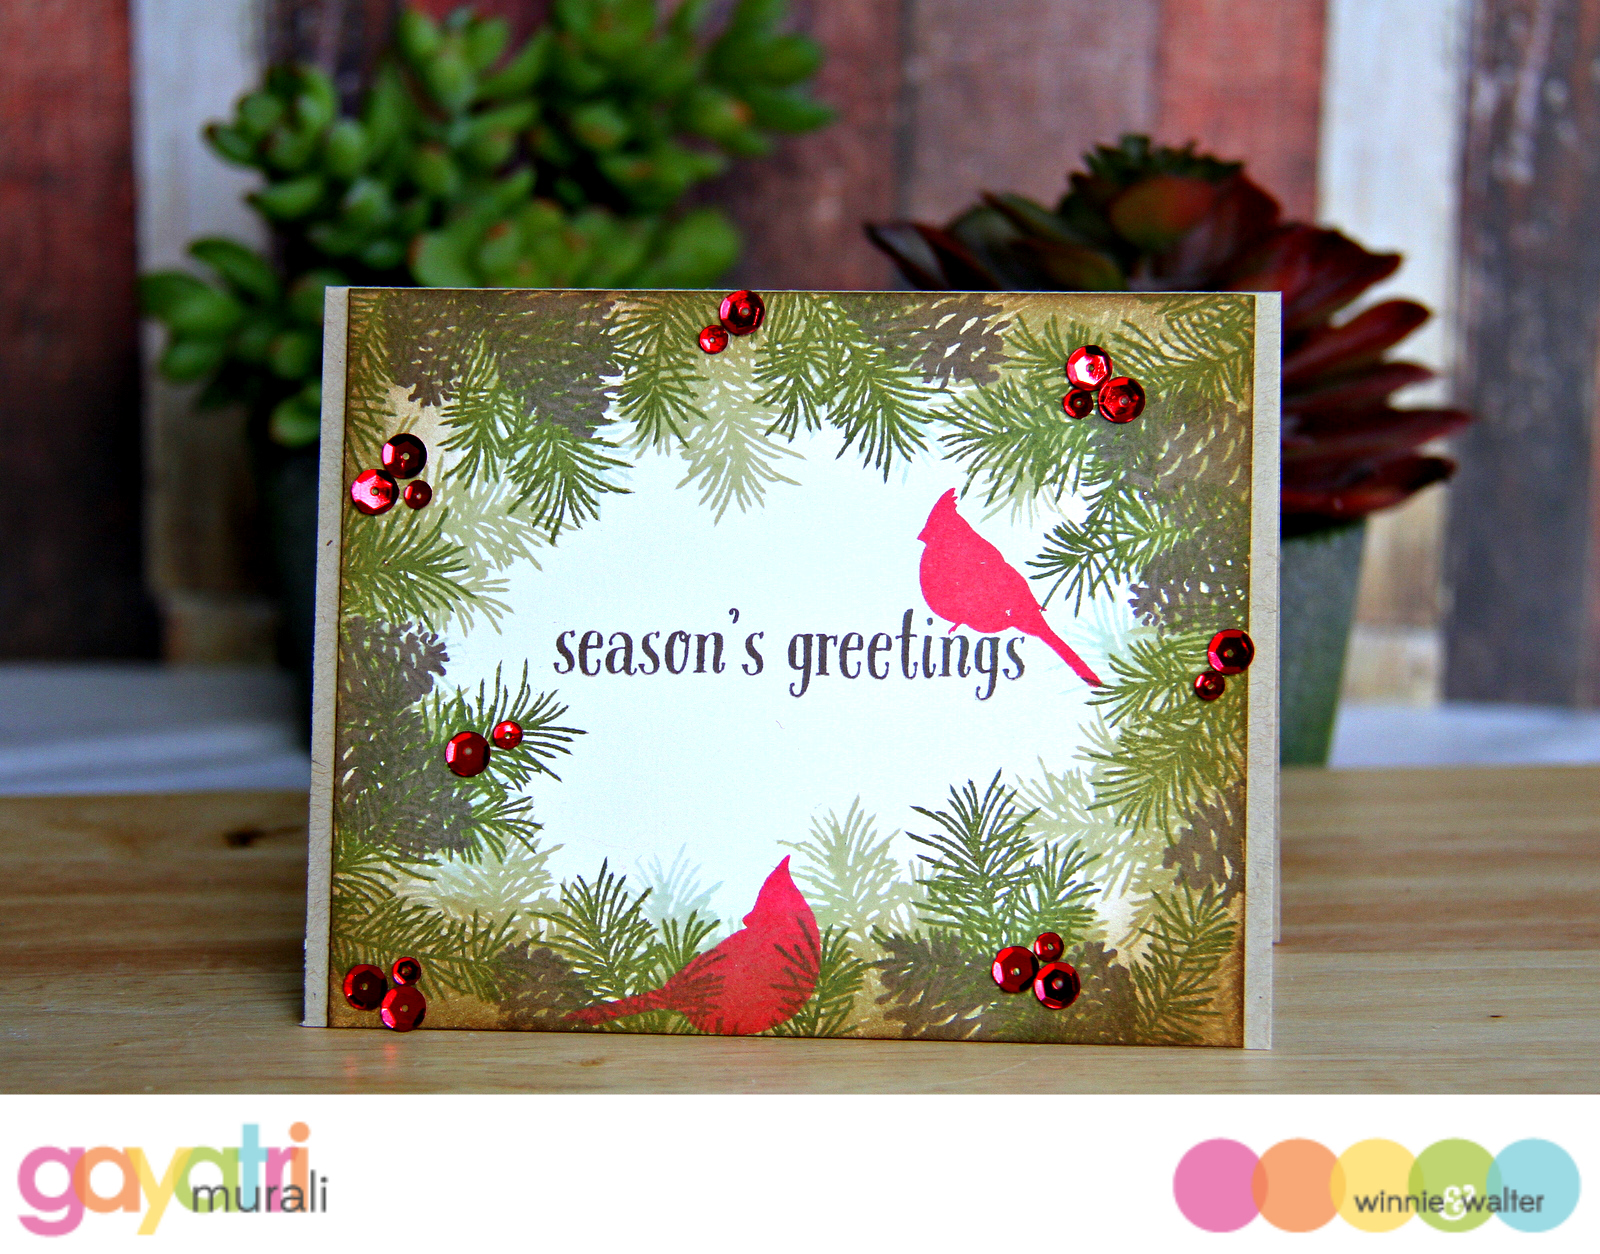 gayatri_seasons_greetings